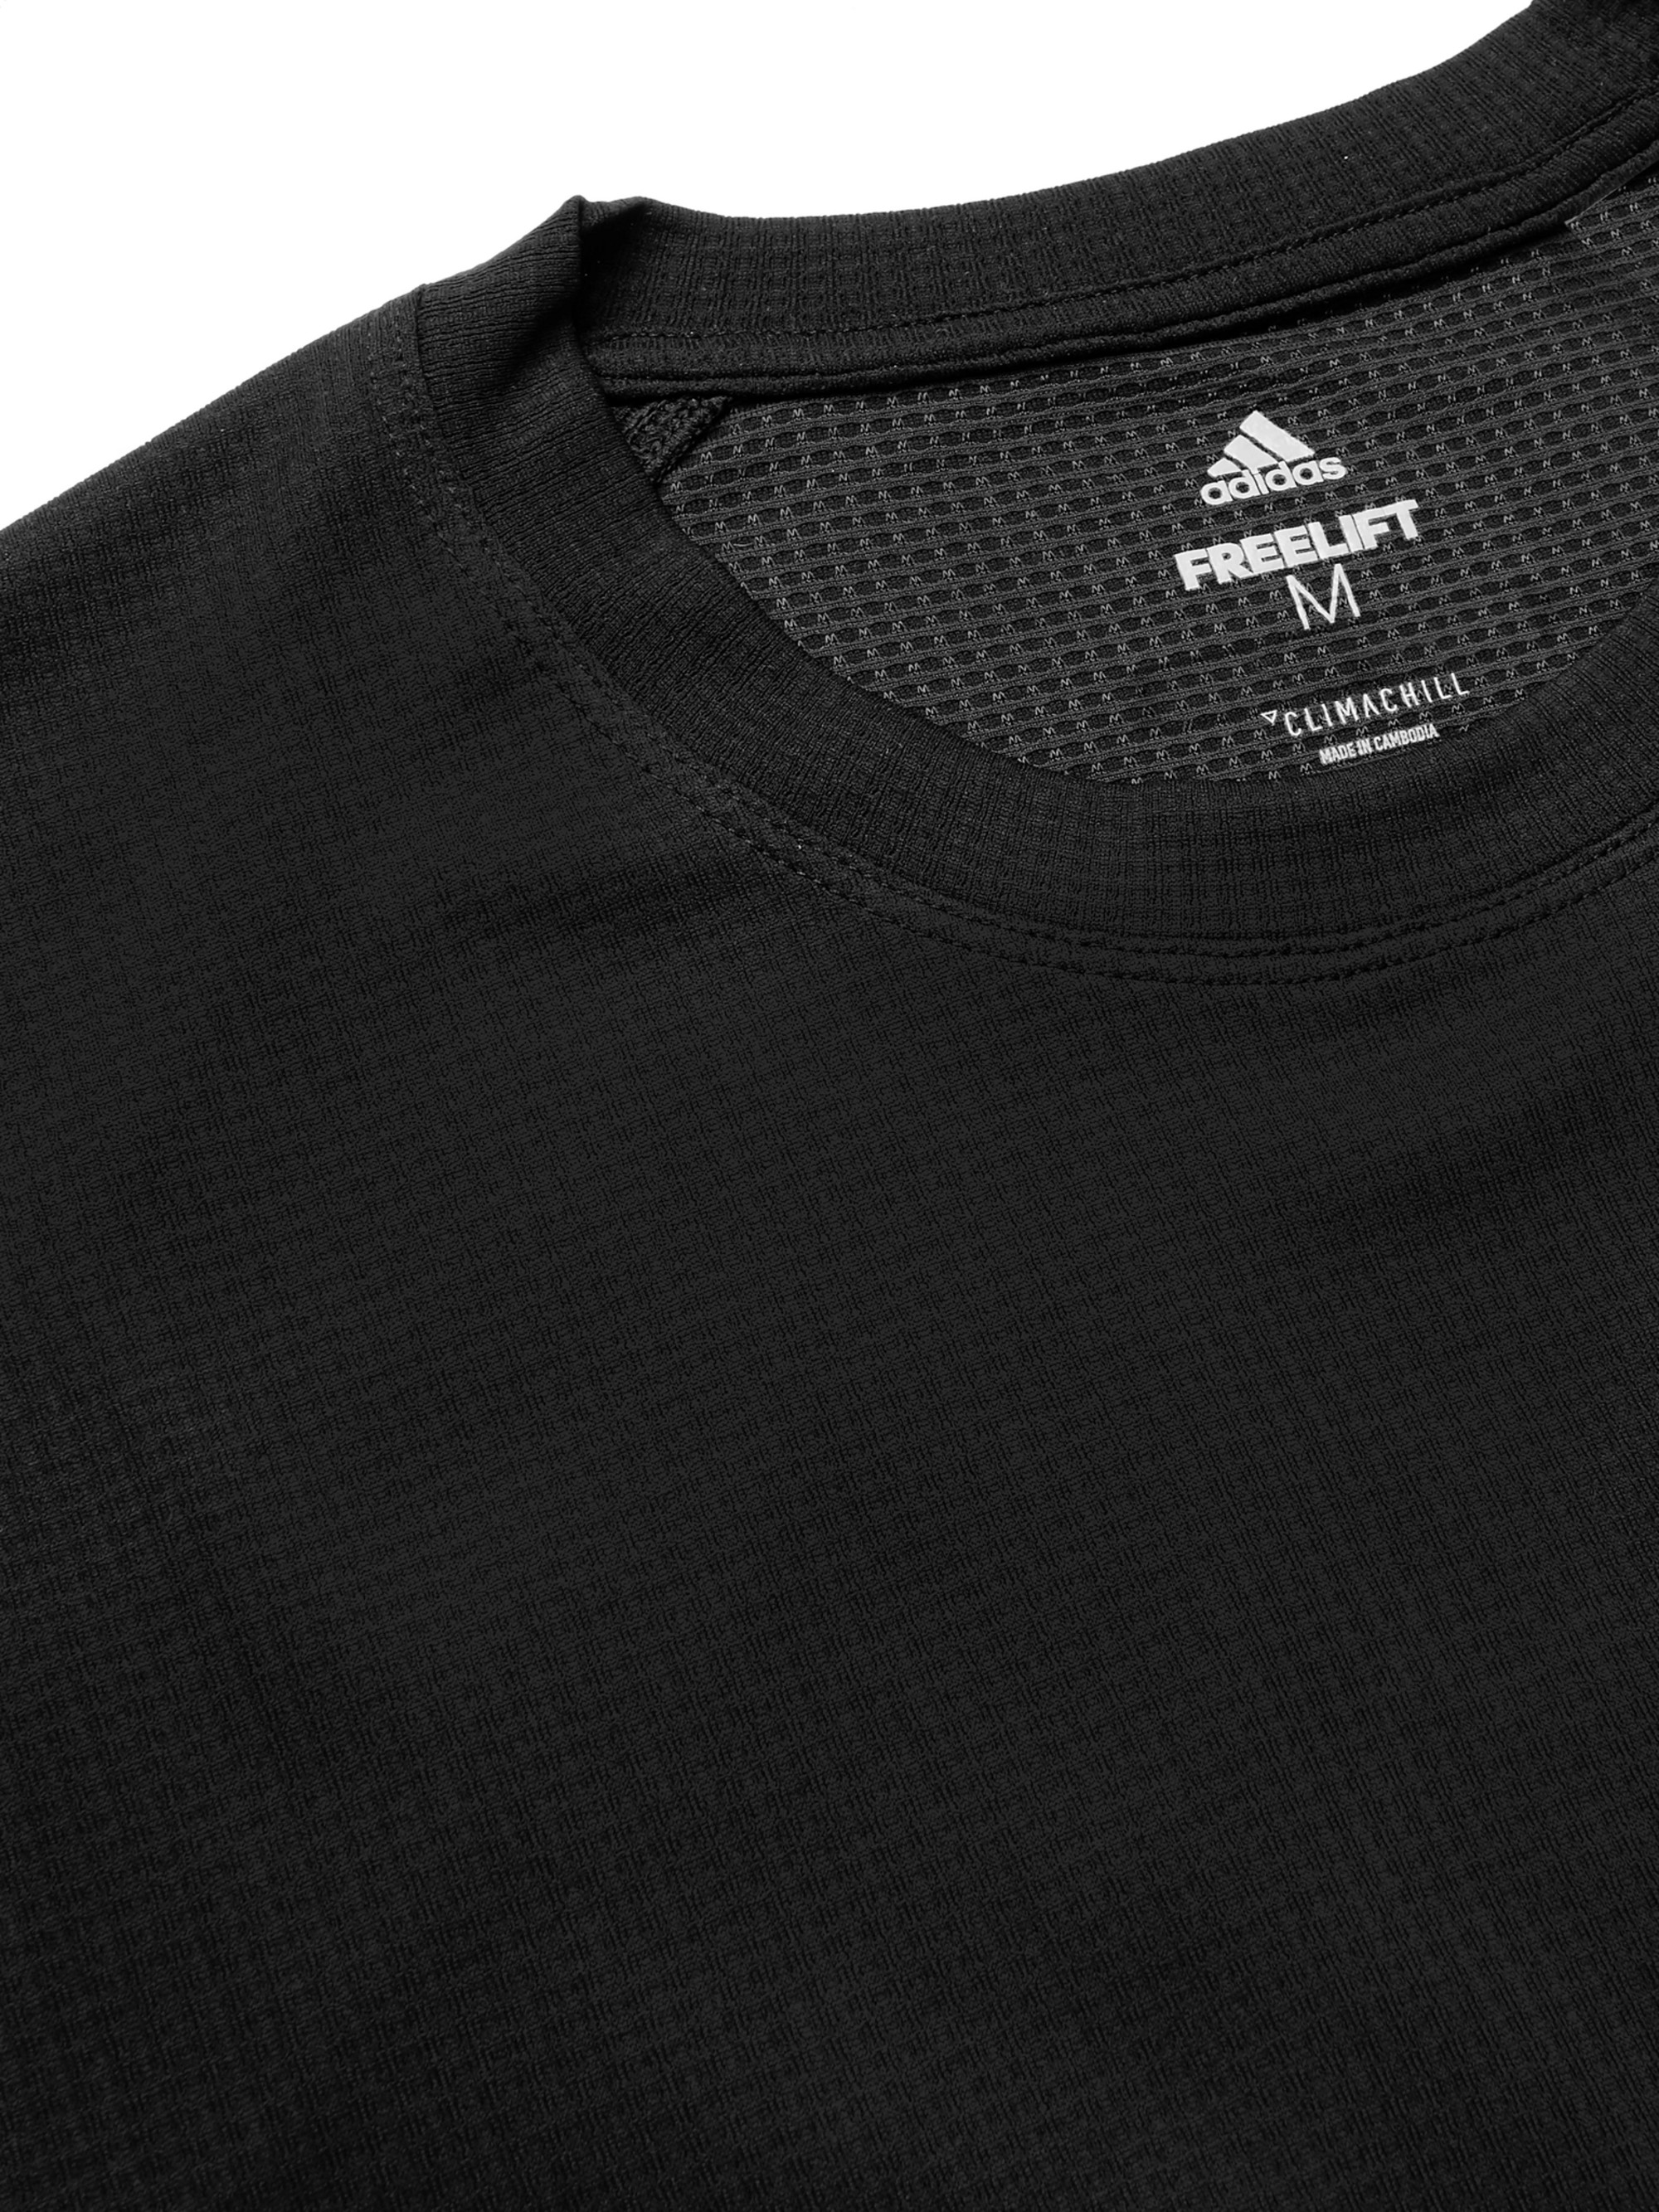 Adidas Sport FreeLift 360 Slim-Fit Climachill T-Shirt